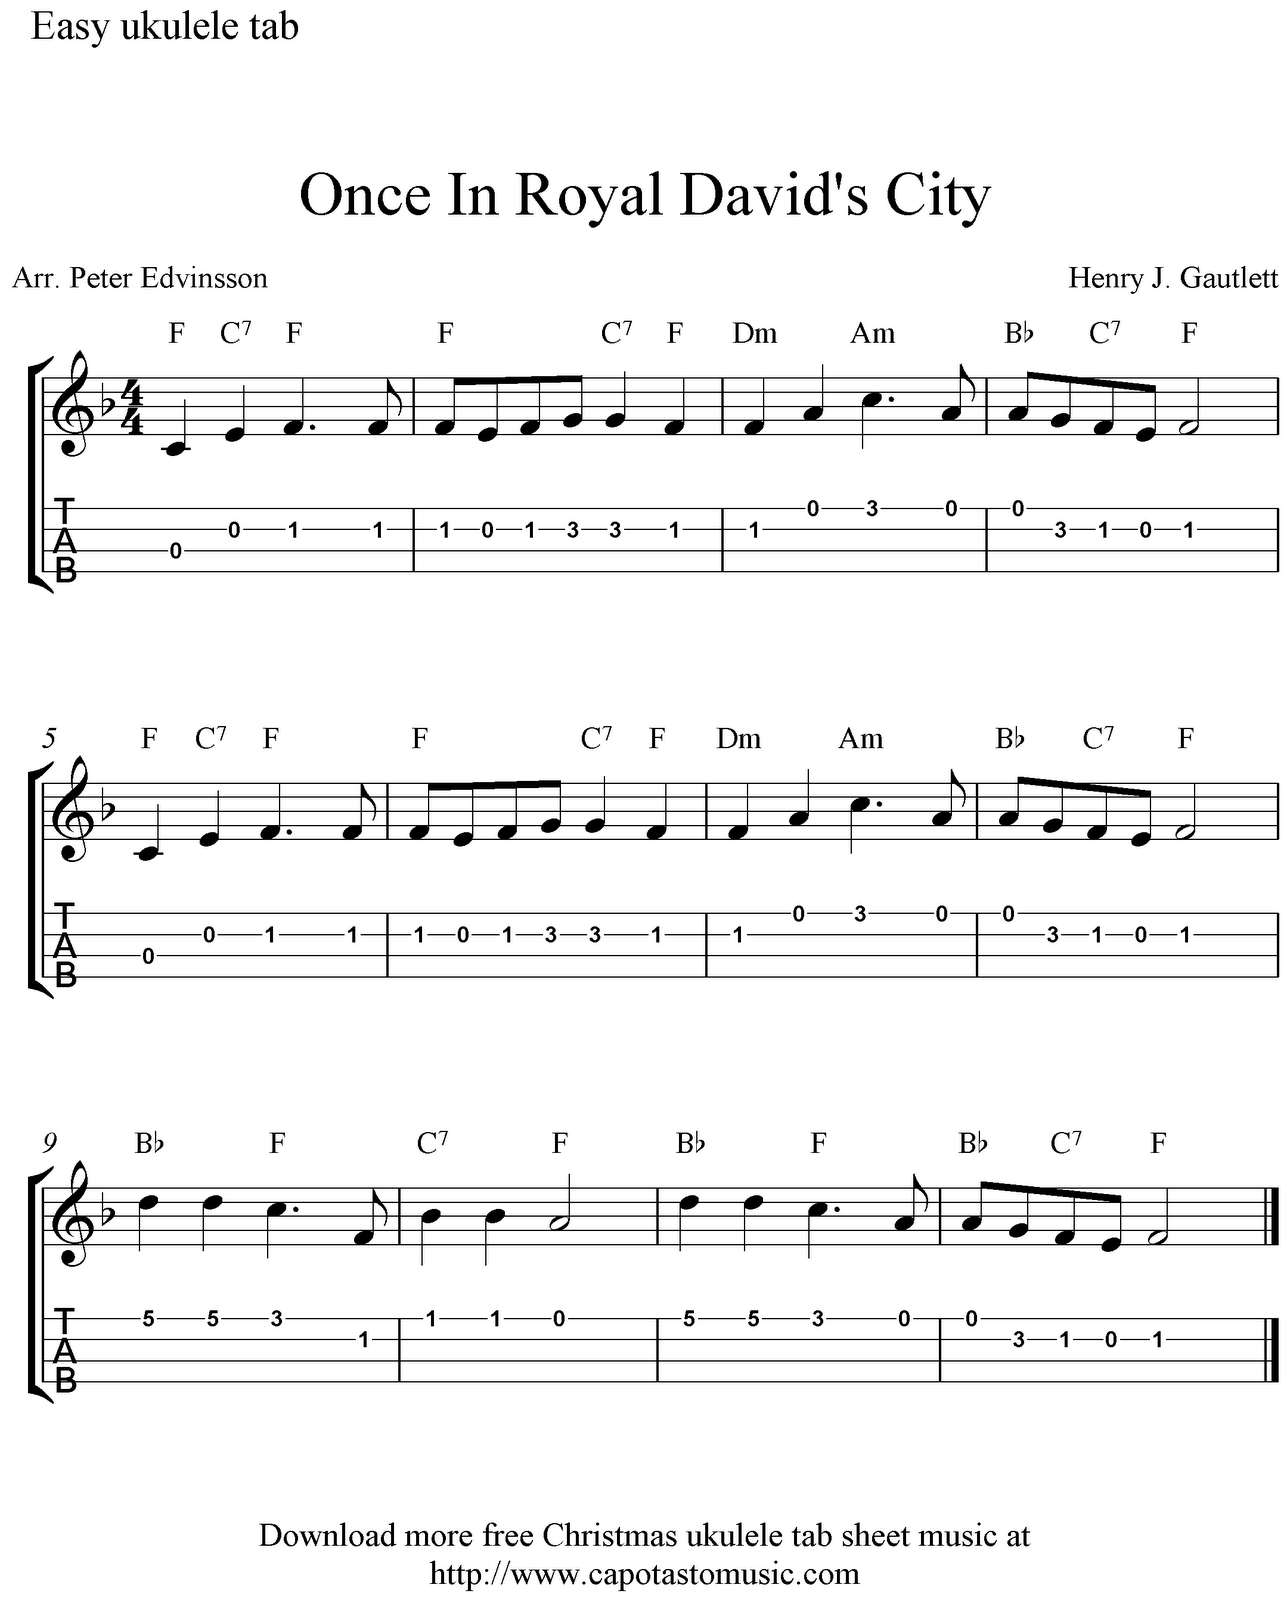 Free Christmas Piano Sheet Music Notes Once In Royal: Free Christmas Ukulele Tab Sheet Music, Once In Royal